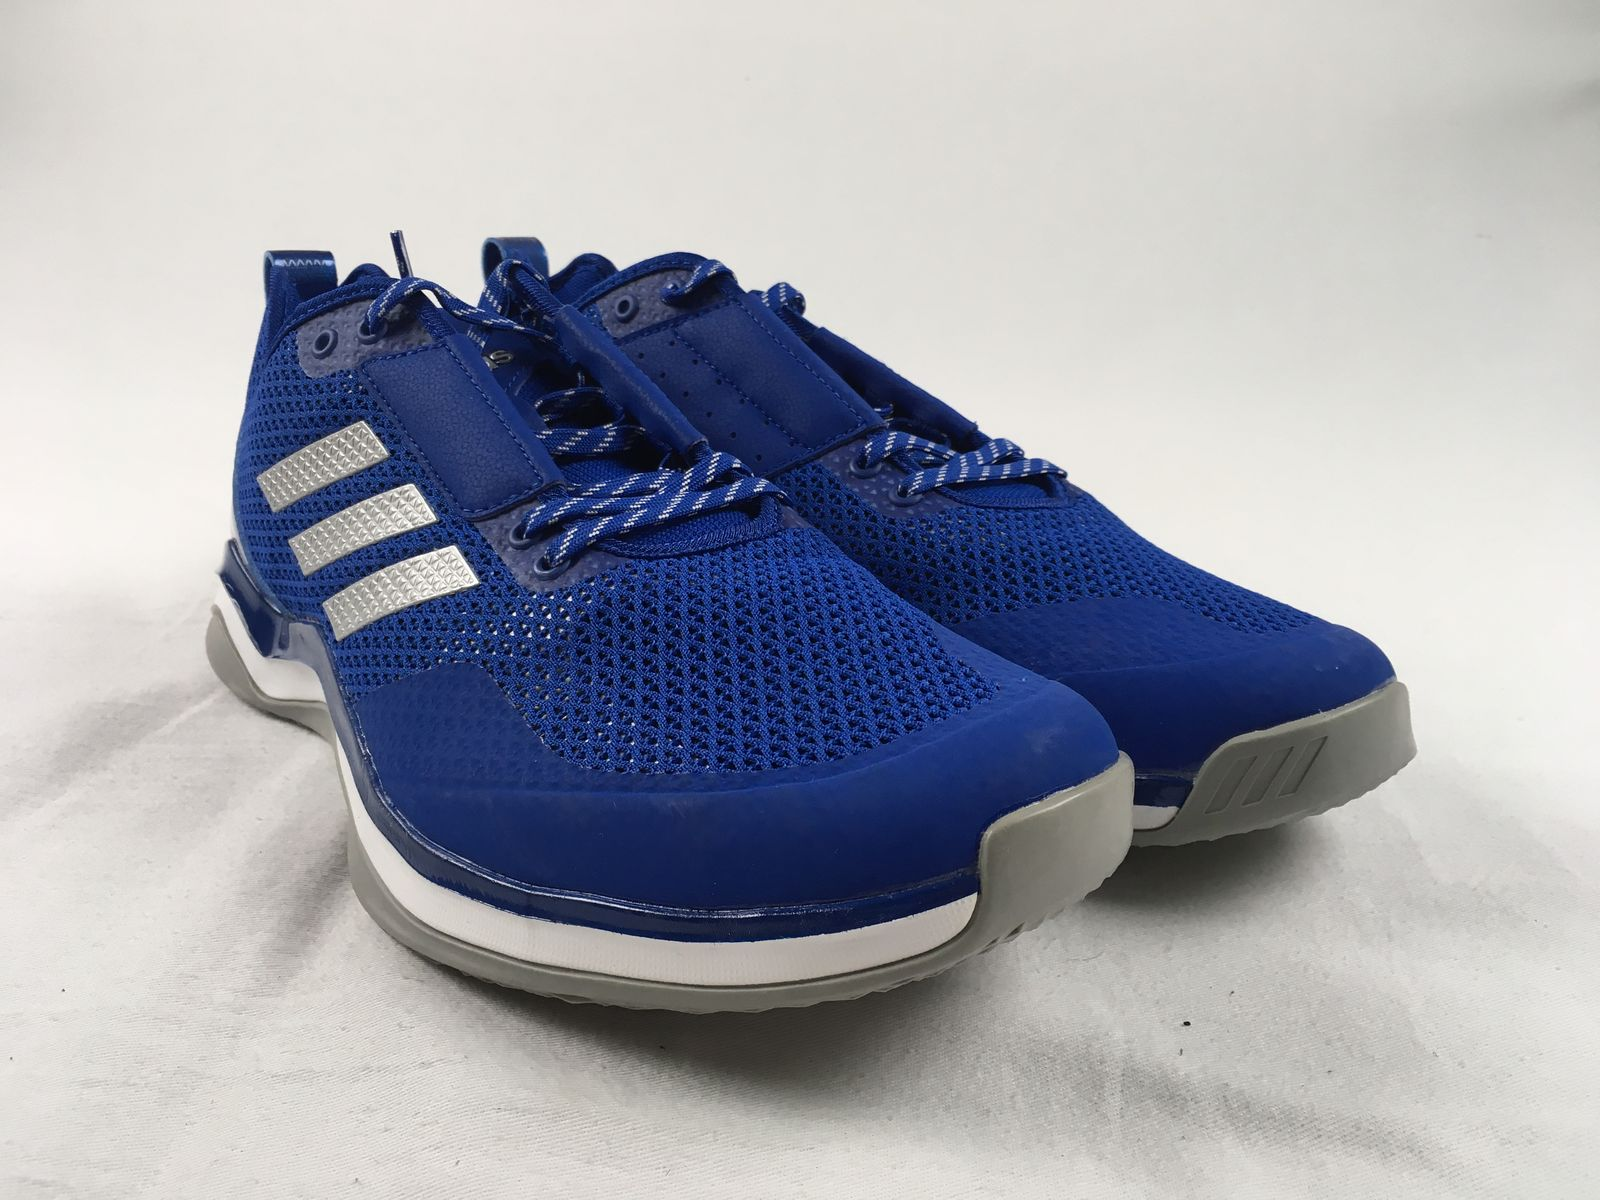 0dc5009a9 Details about NEW adidas Speed Trainer 3.0 - Blue Running